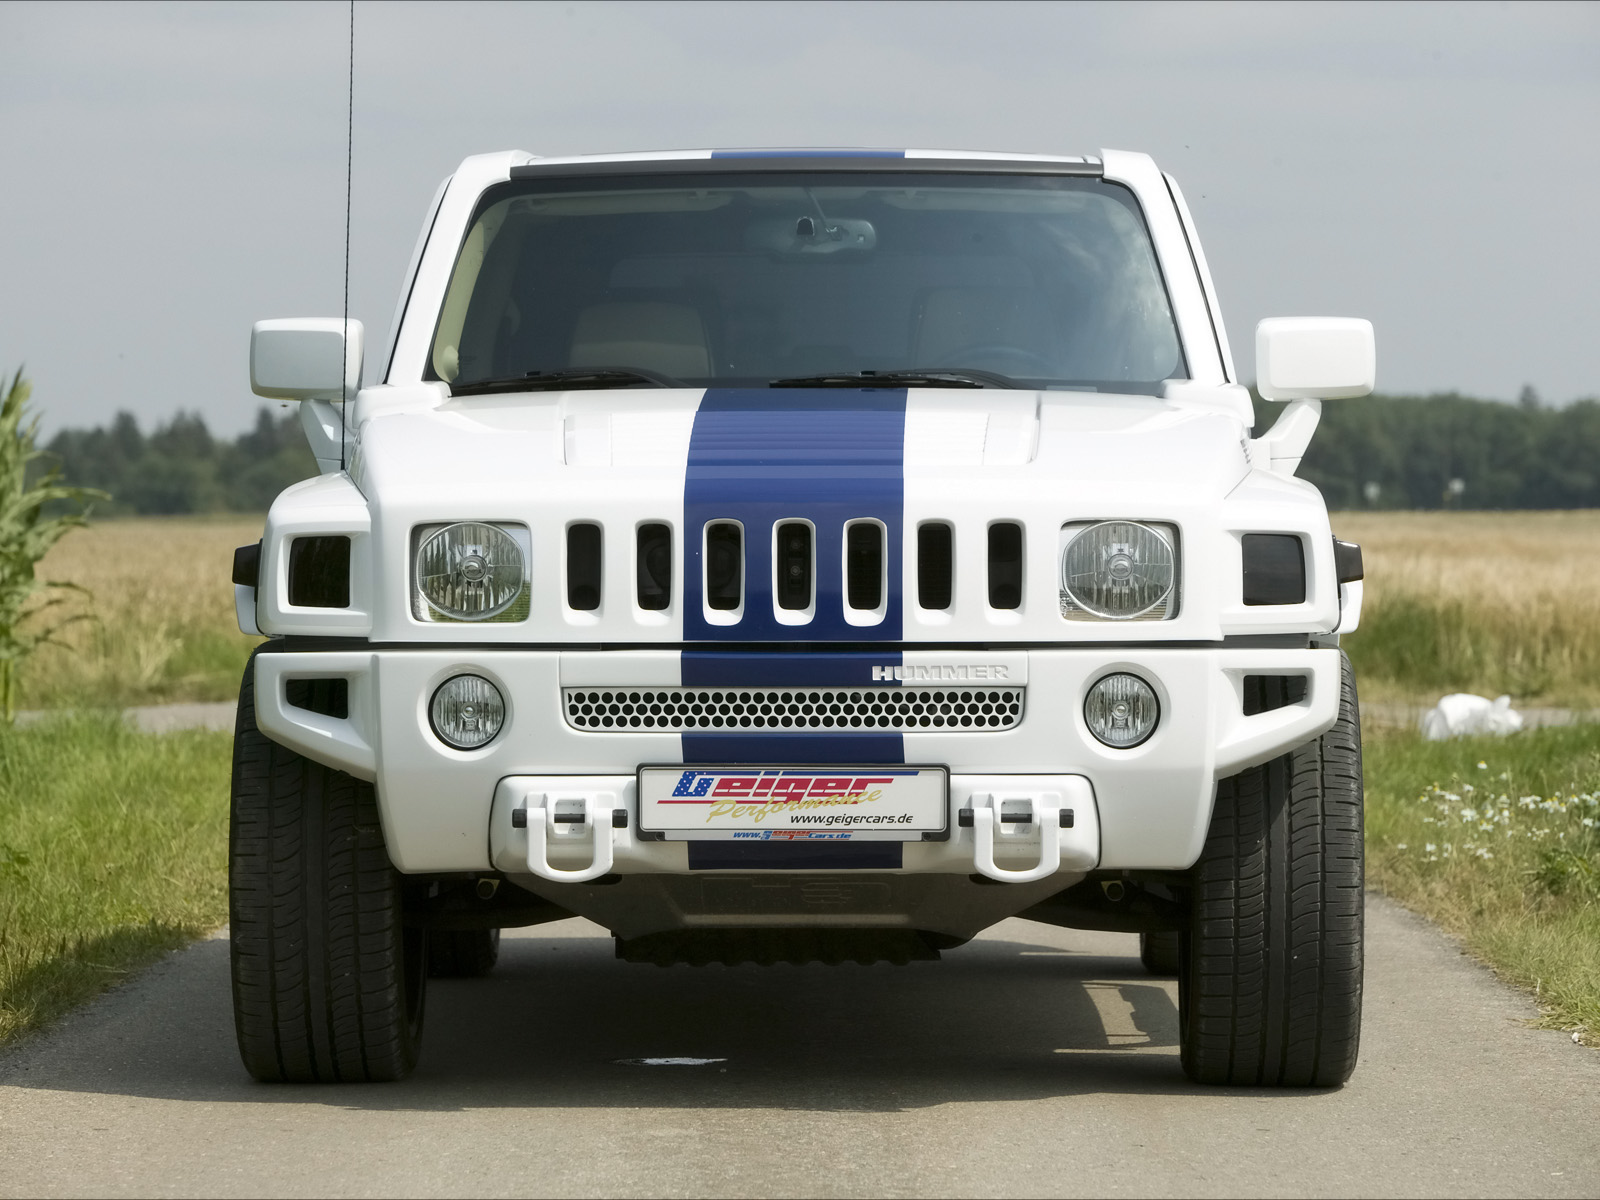 The intimidating white and blue Hummer H3T Alpha 5